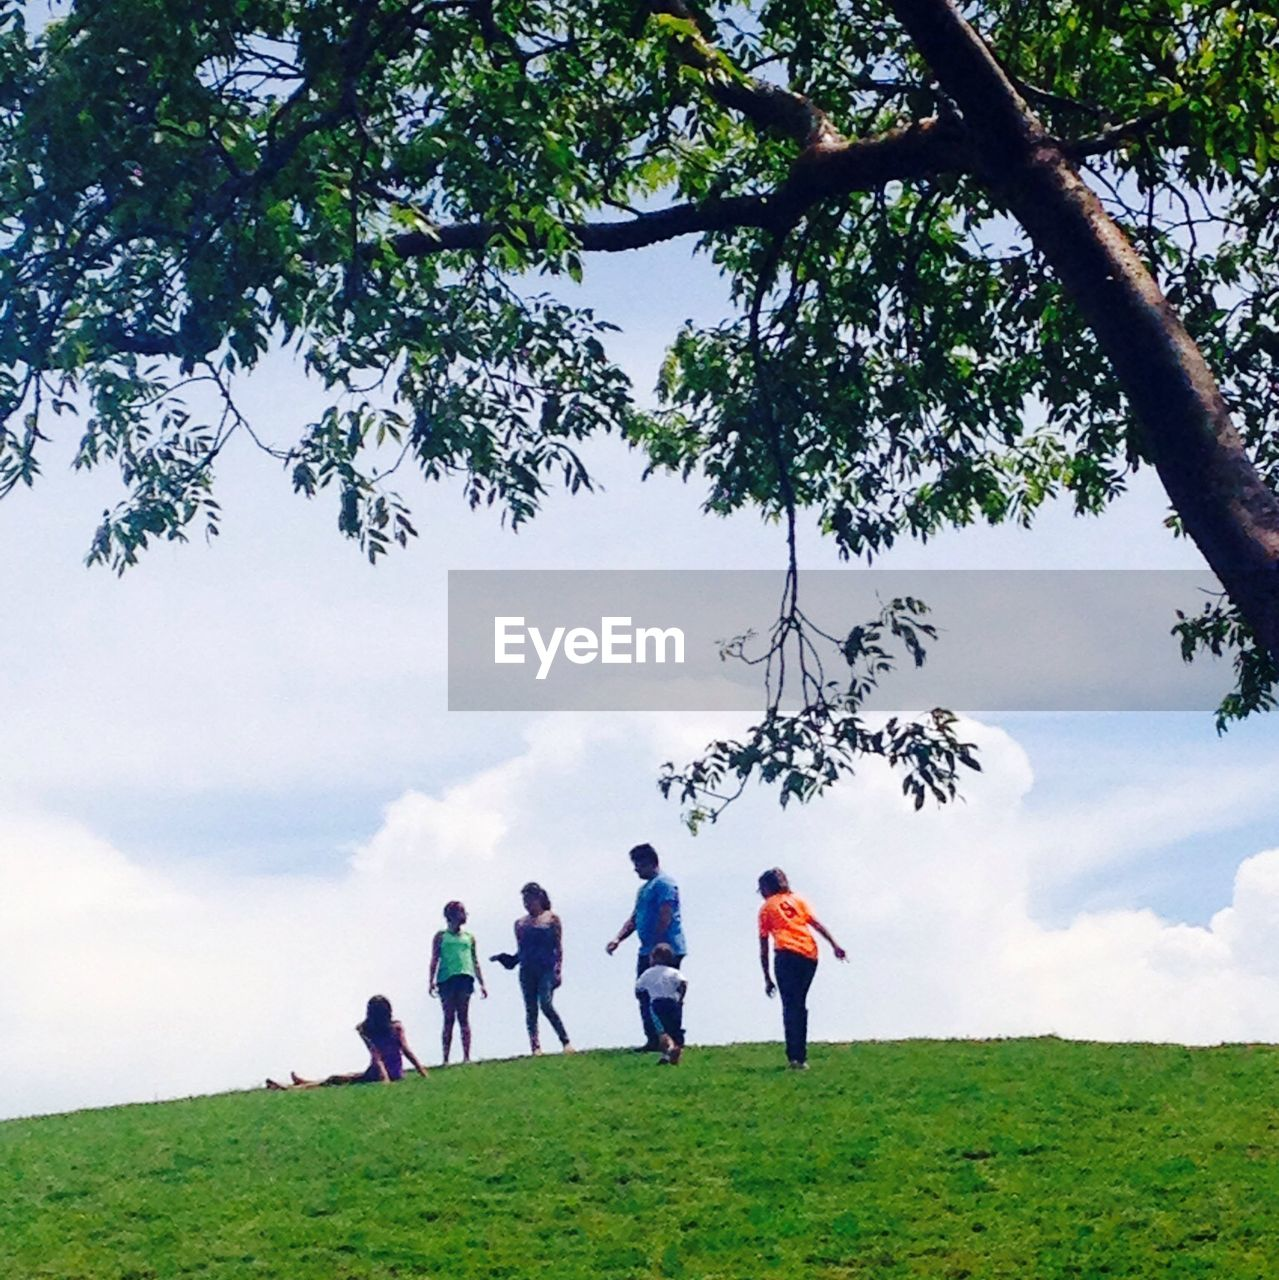 tree, real people, leisure activity, cloud - sky, sky, green color, field, lifestyles, growth, grass, nature, day, outdoors, men, full length, scenics, playing, landscape, beauty in nature, standing, togetherness, women, childhood, large group of people, people